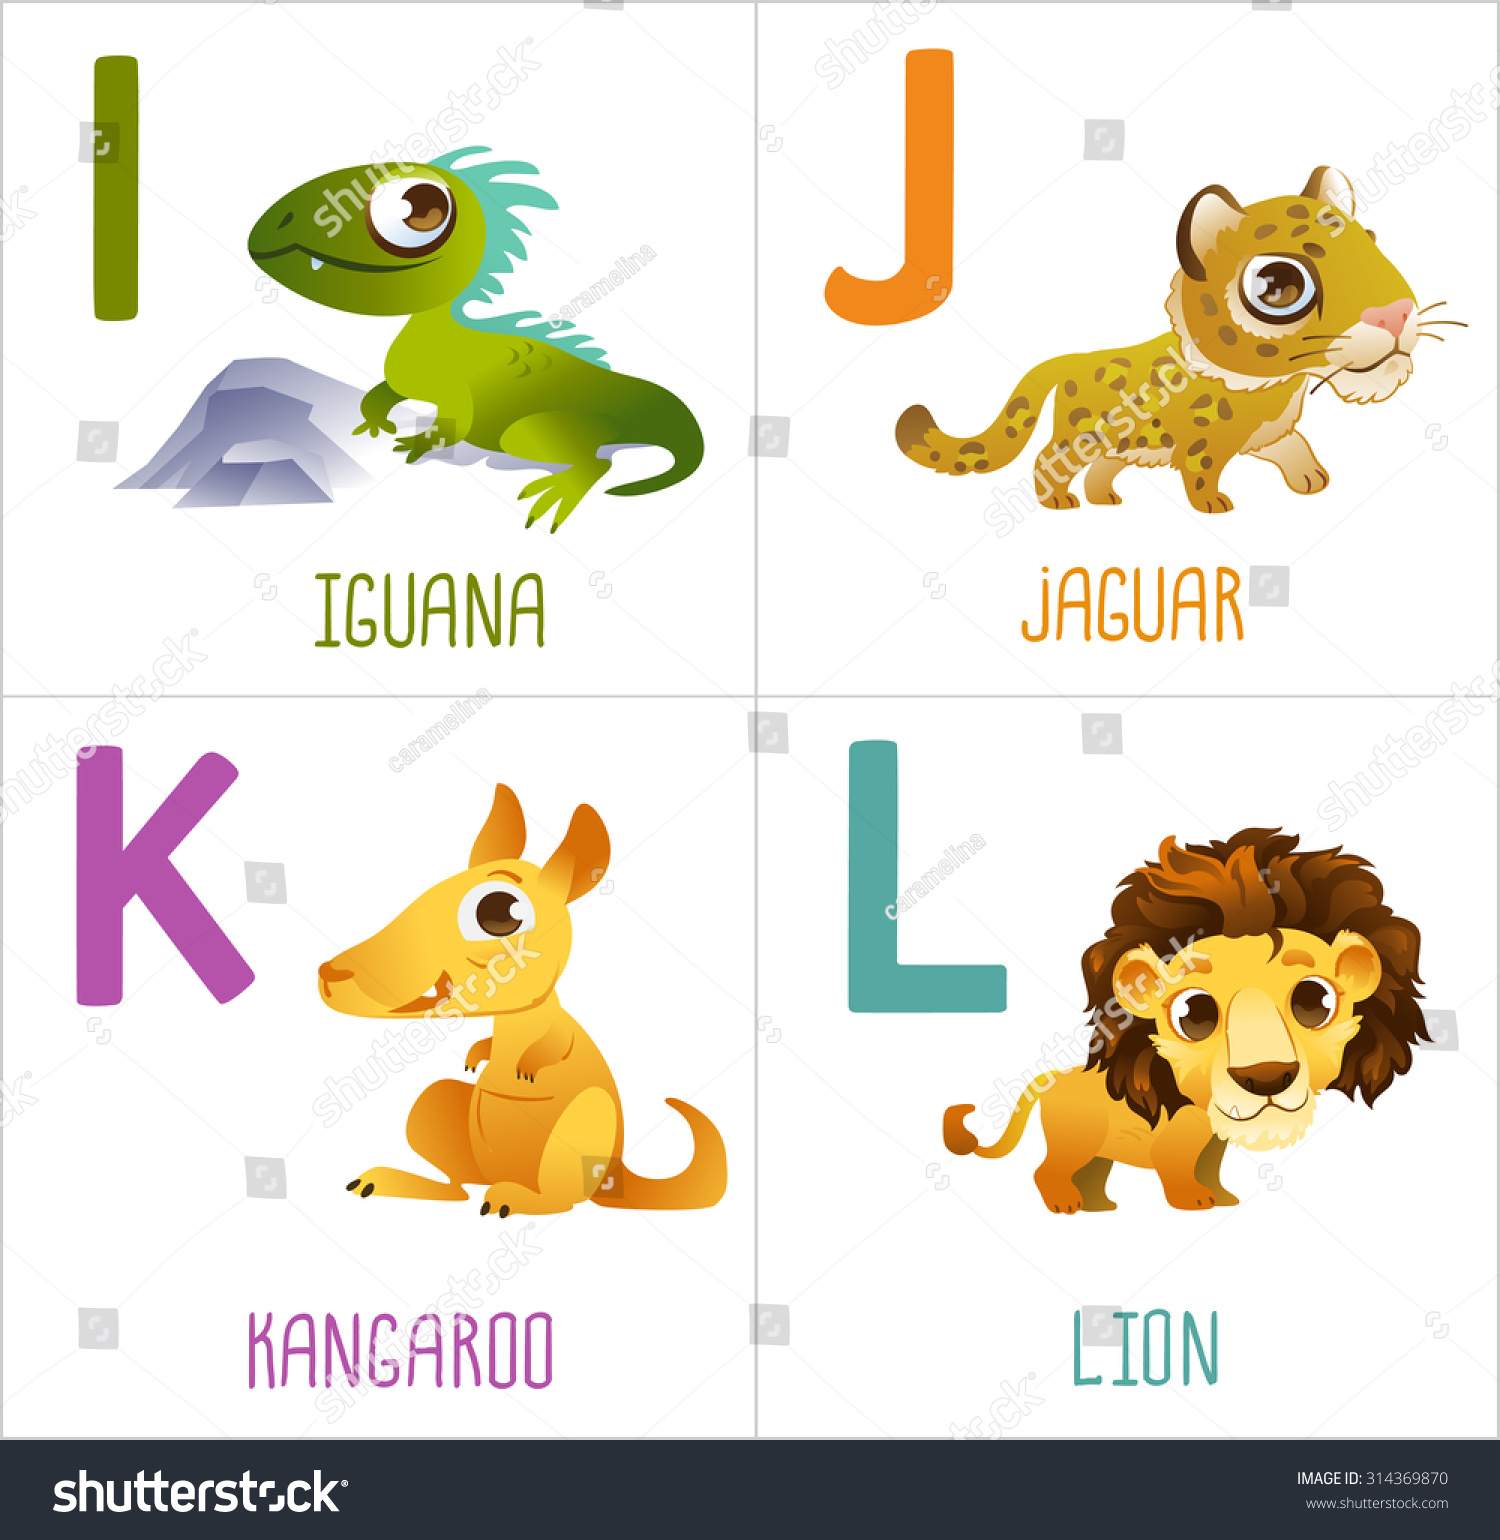 Cute Cartoon Animals Alphabet Kids Funny Stock Vector